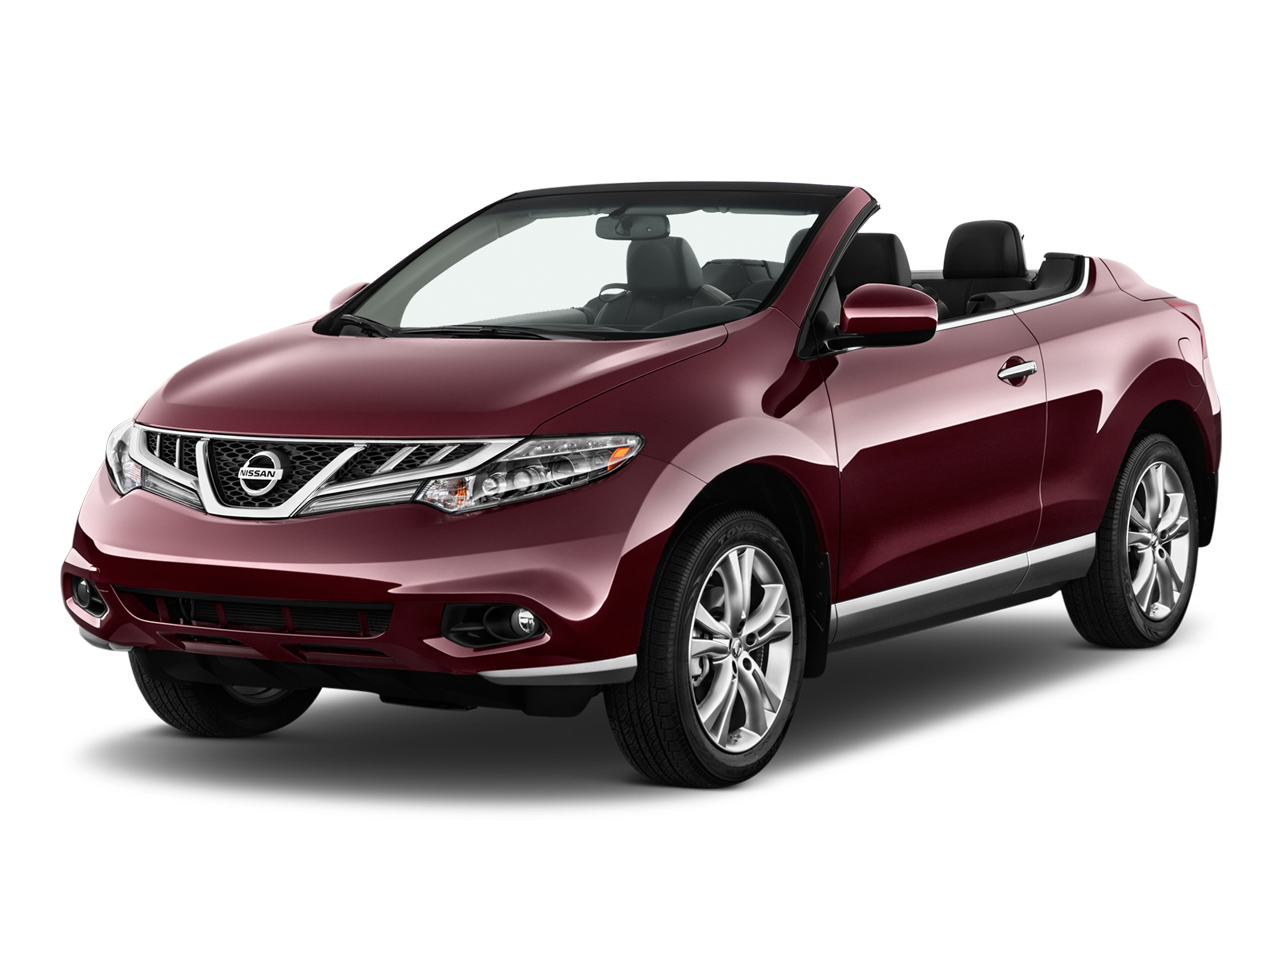 2011 nissan murano crosscabriolet review ratings specs prices and photos the car connection. Black Bedroom Furniture Sets. Home Design Ideas